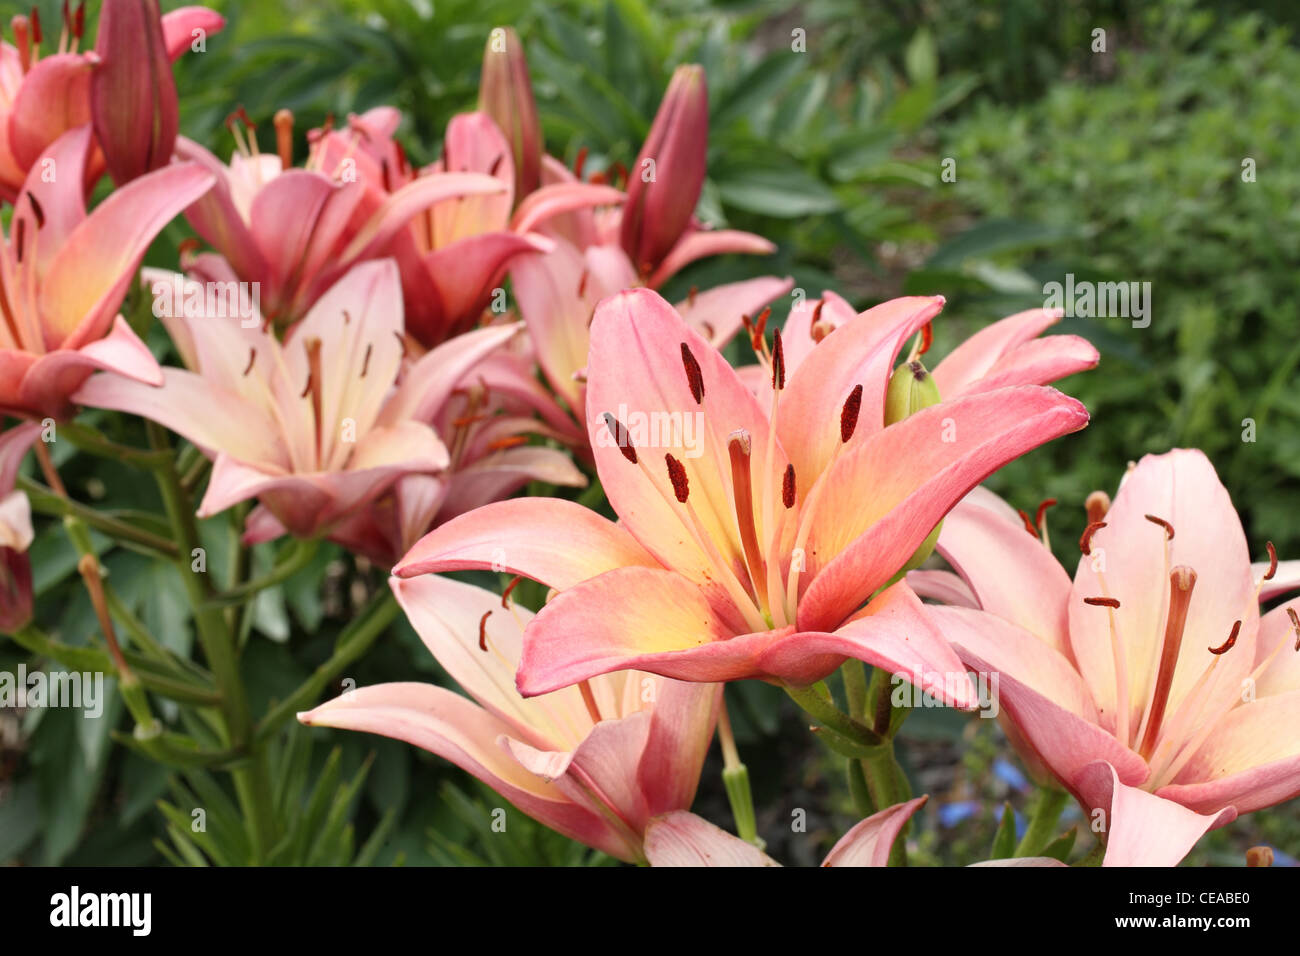 Beautiful pink lily flowers growing in a garden stock photo beautiful pink lily flowers growing in a garden izmirmasajfo